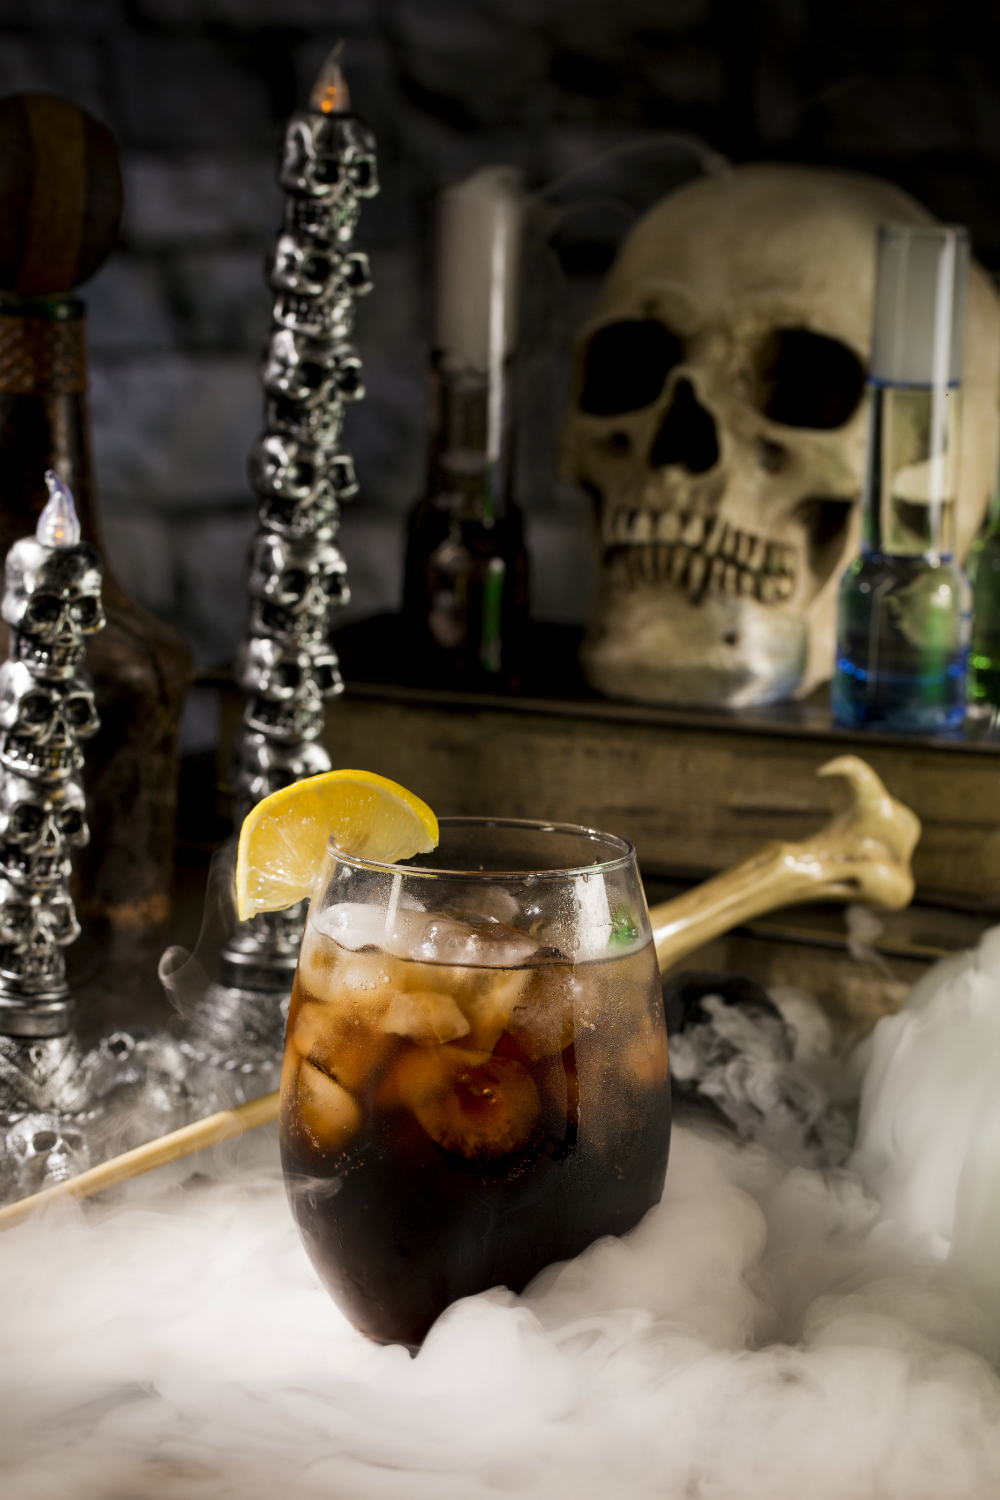 Harry Potter Cocktails: The Dark Lord's Deadly Long Island Iced Tea